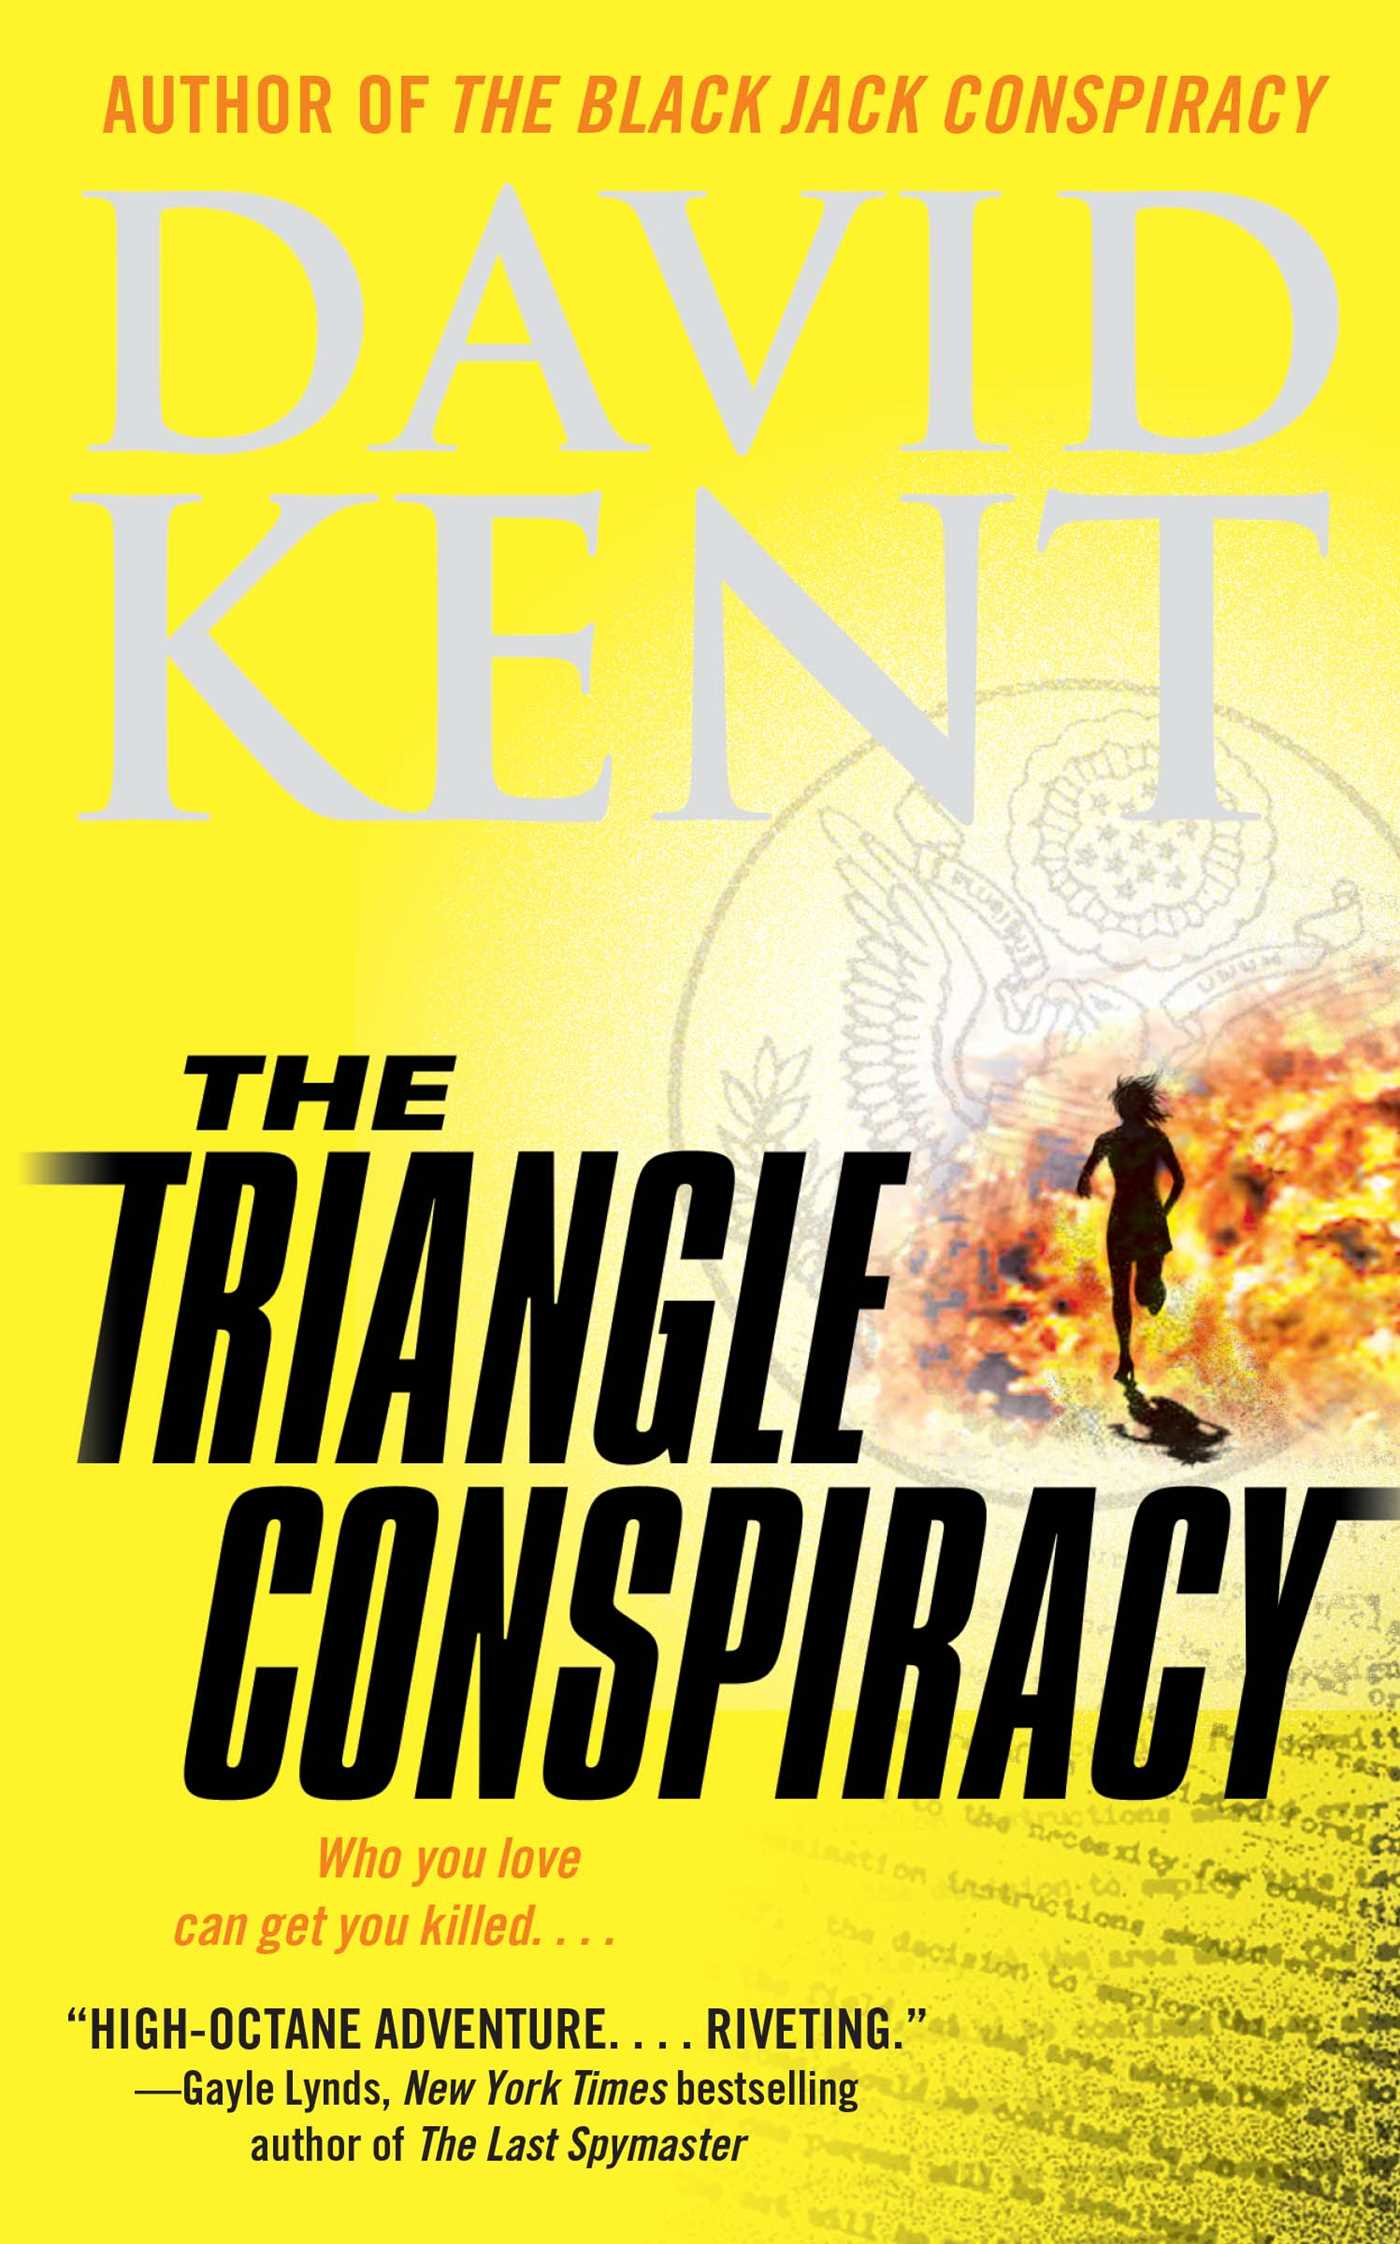 The-triangle-conspiracy-9781416531203_hr